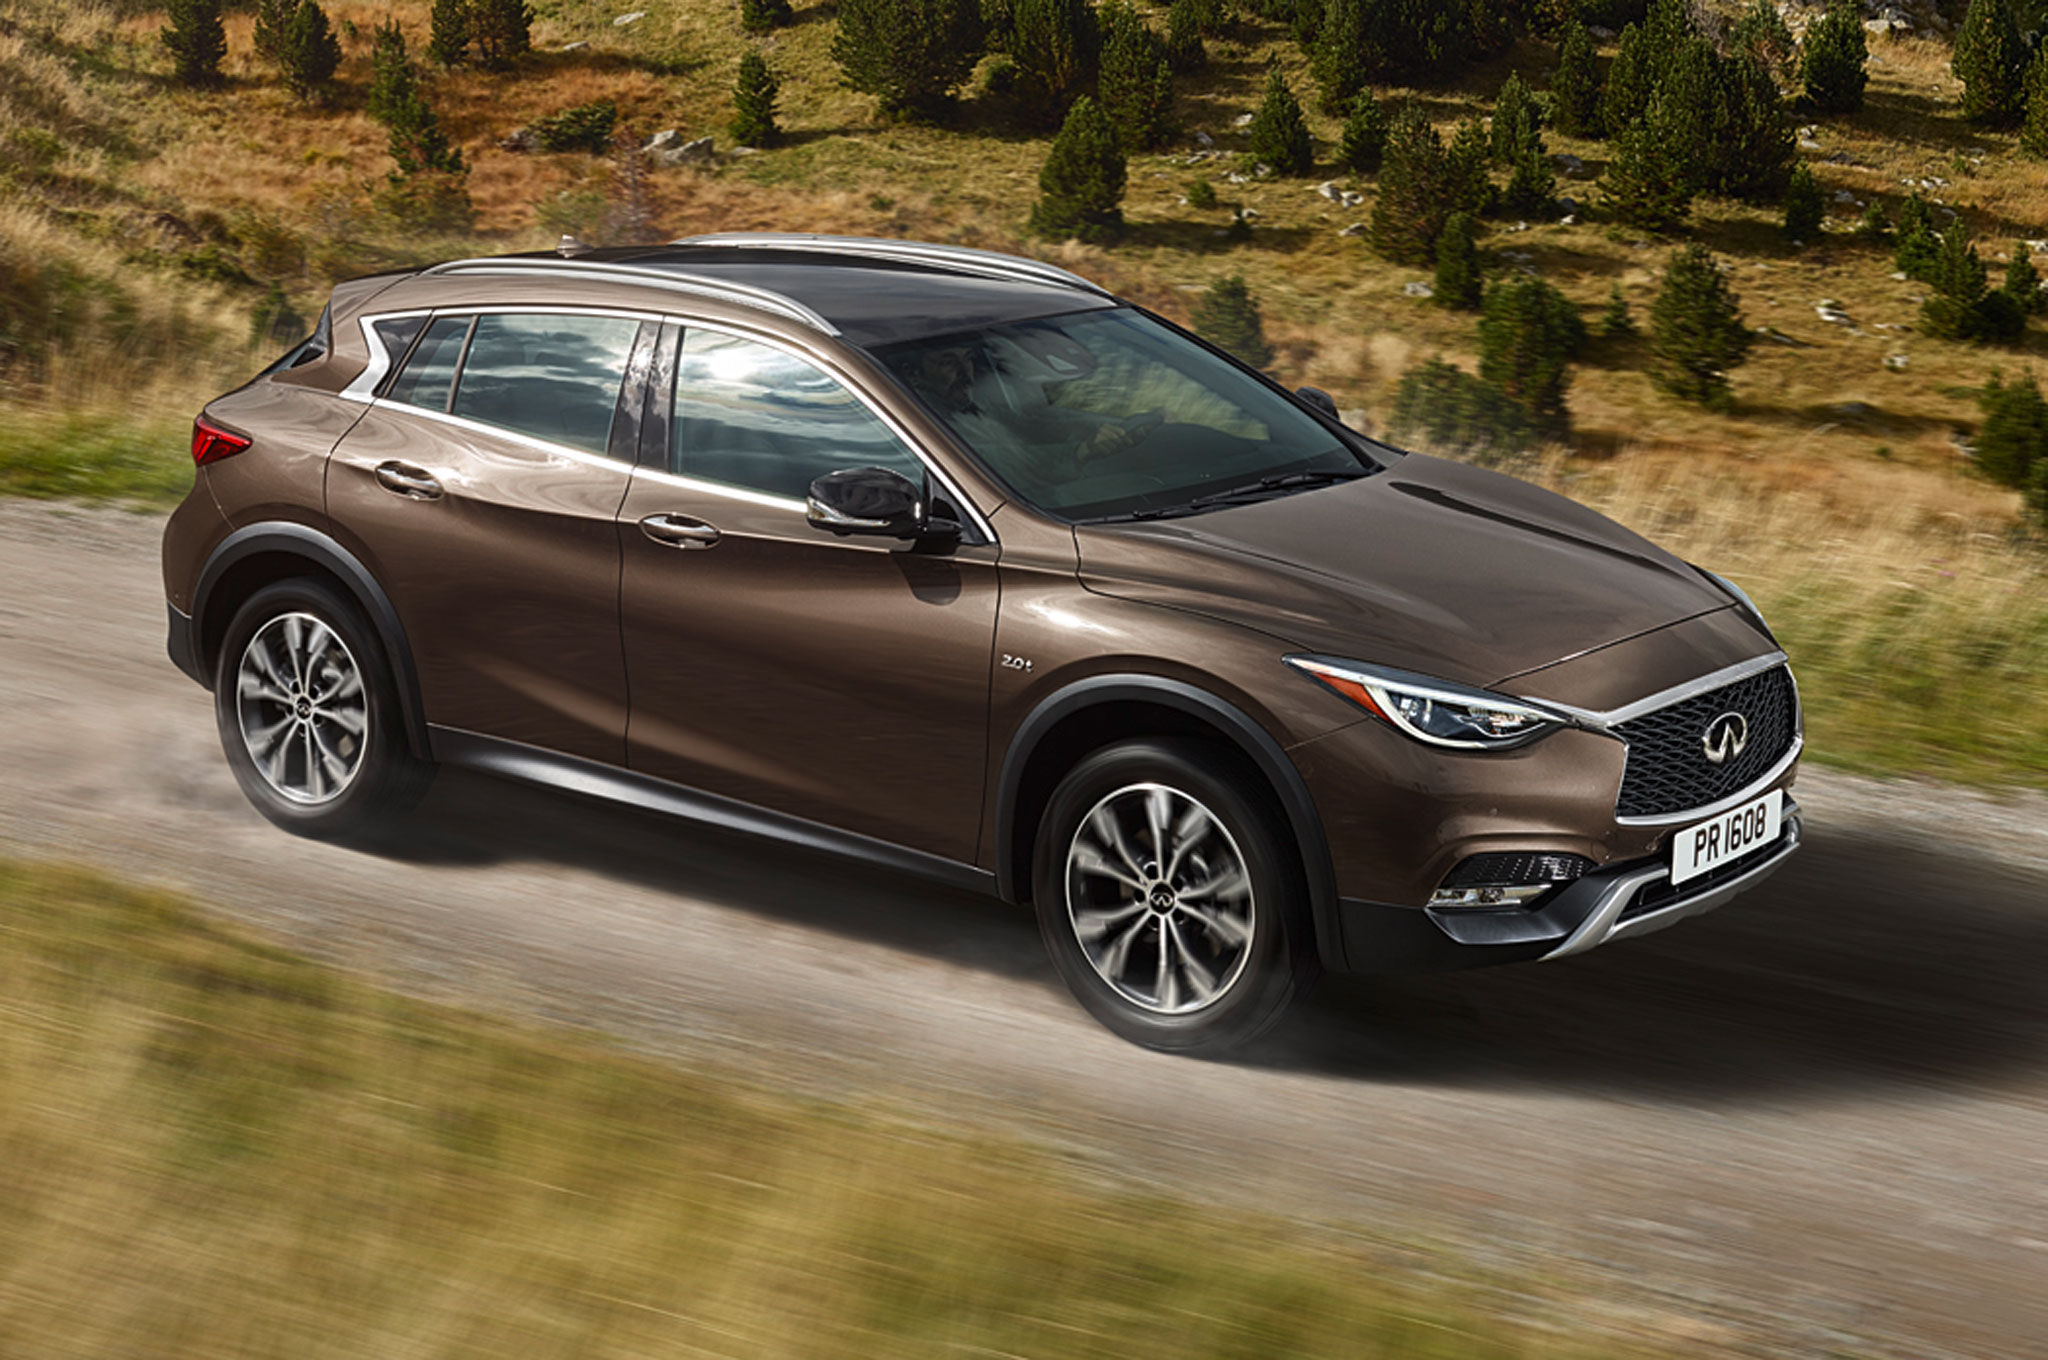 hybrid concep news cars speed infinity engine beat top s infiniti will combustion internal car concept up crossover your